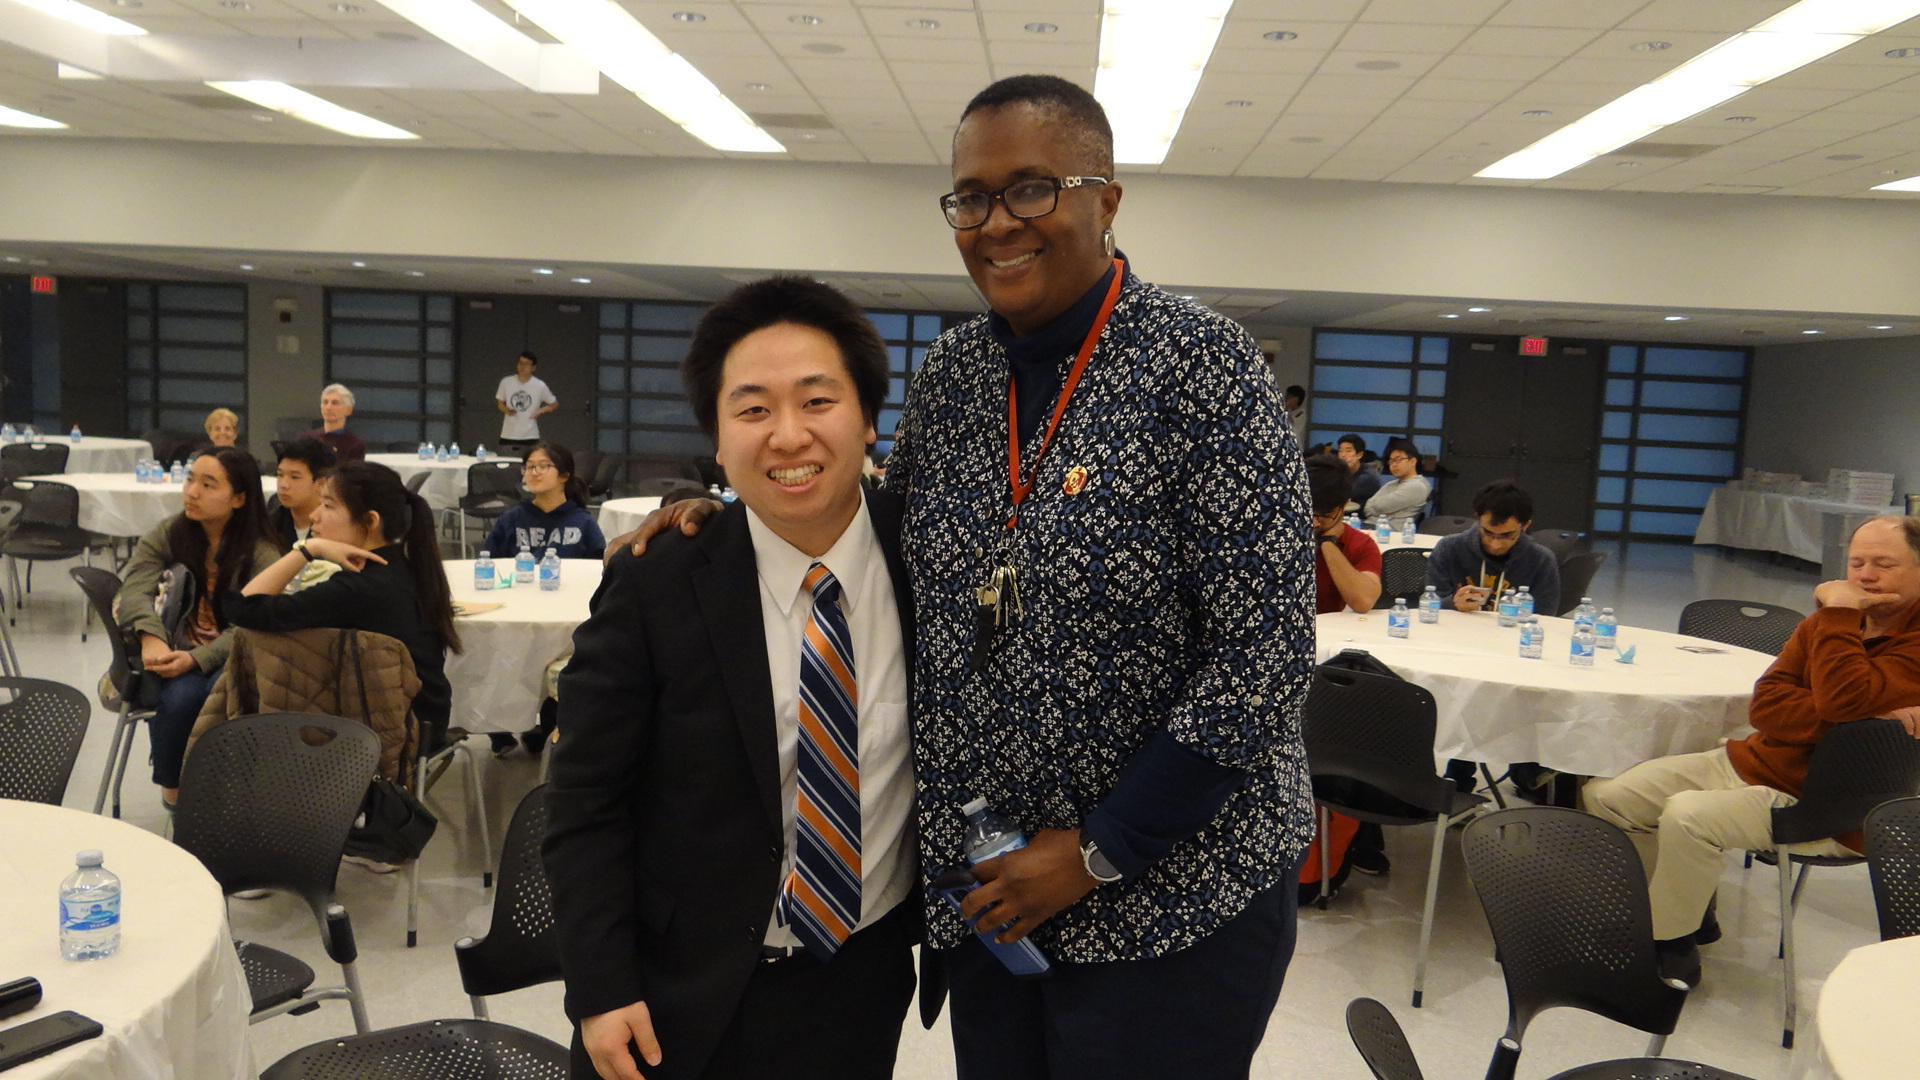 Takafumi Mashiko (left) with Dr. Marybeth Boger (right), Dean of Students.